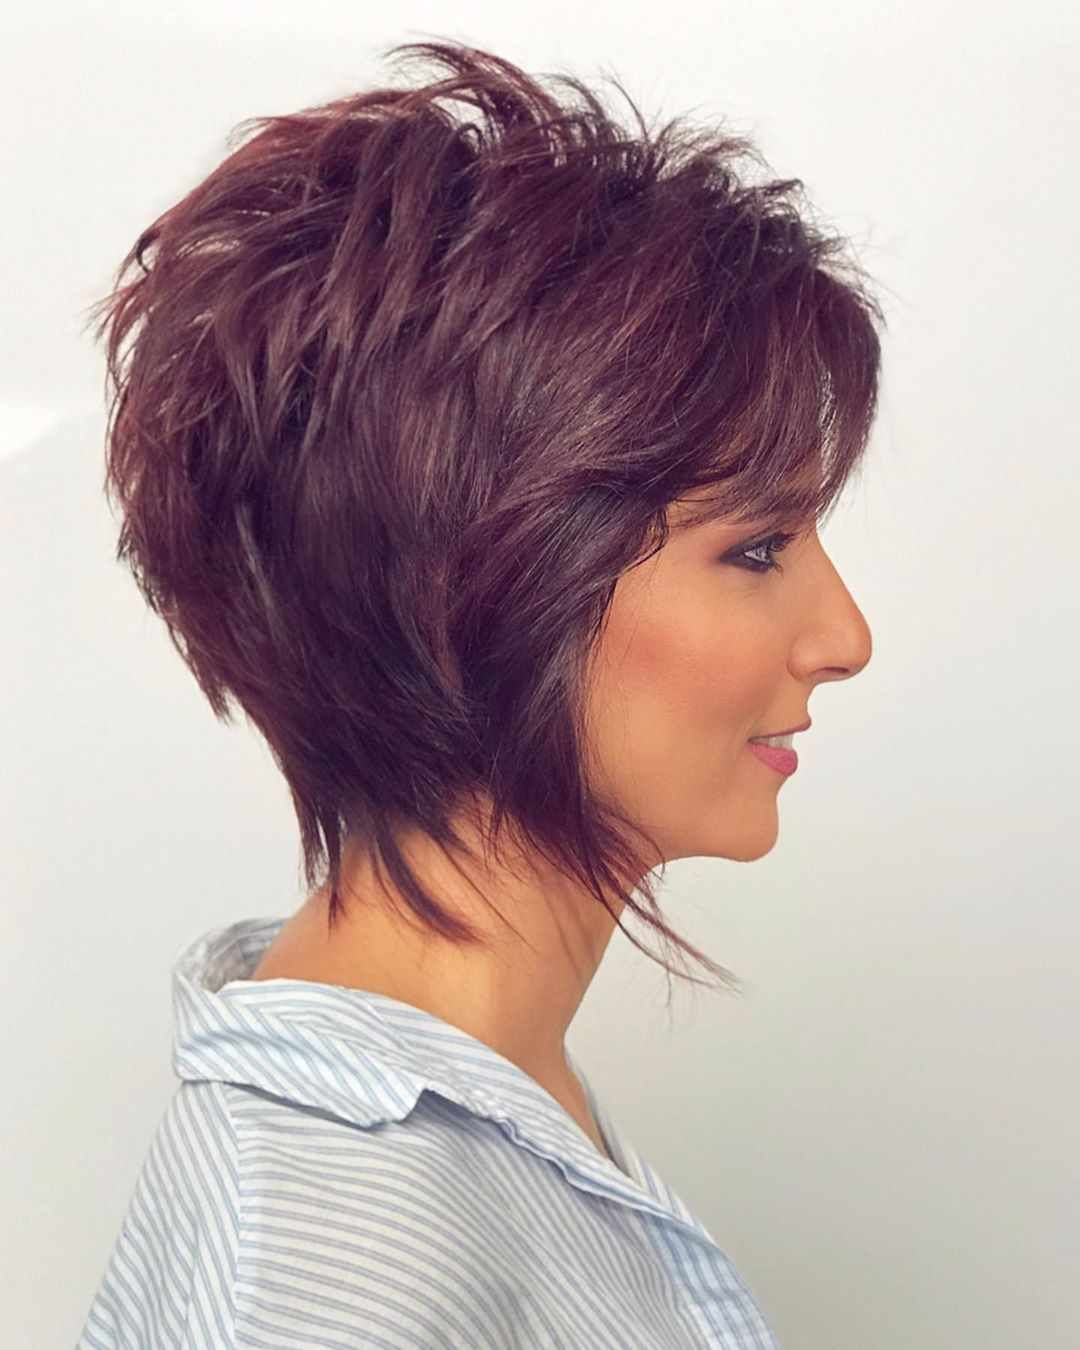 2020 Hair Trends For Women